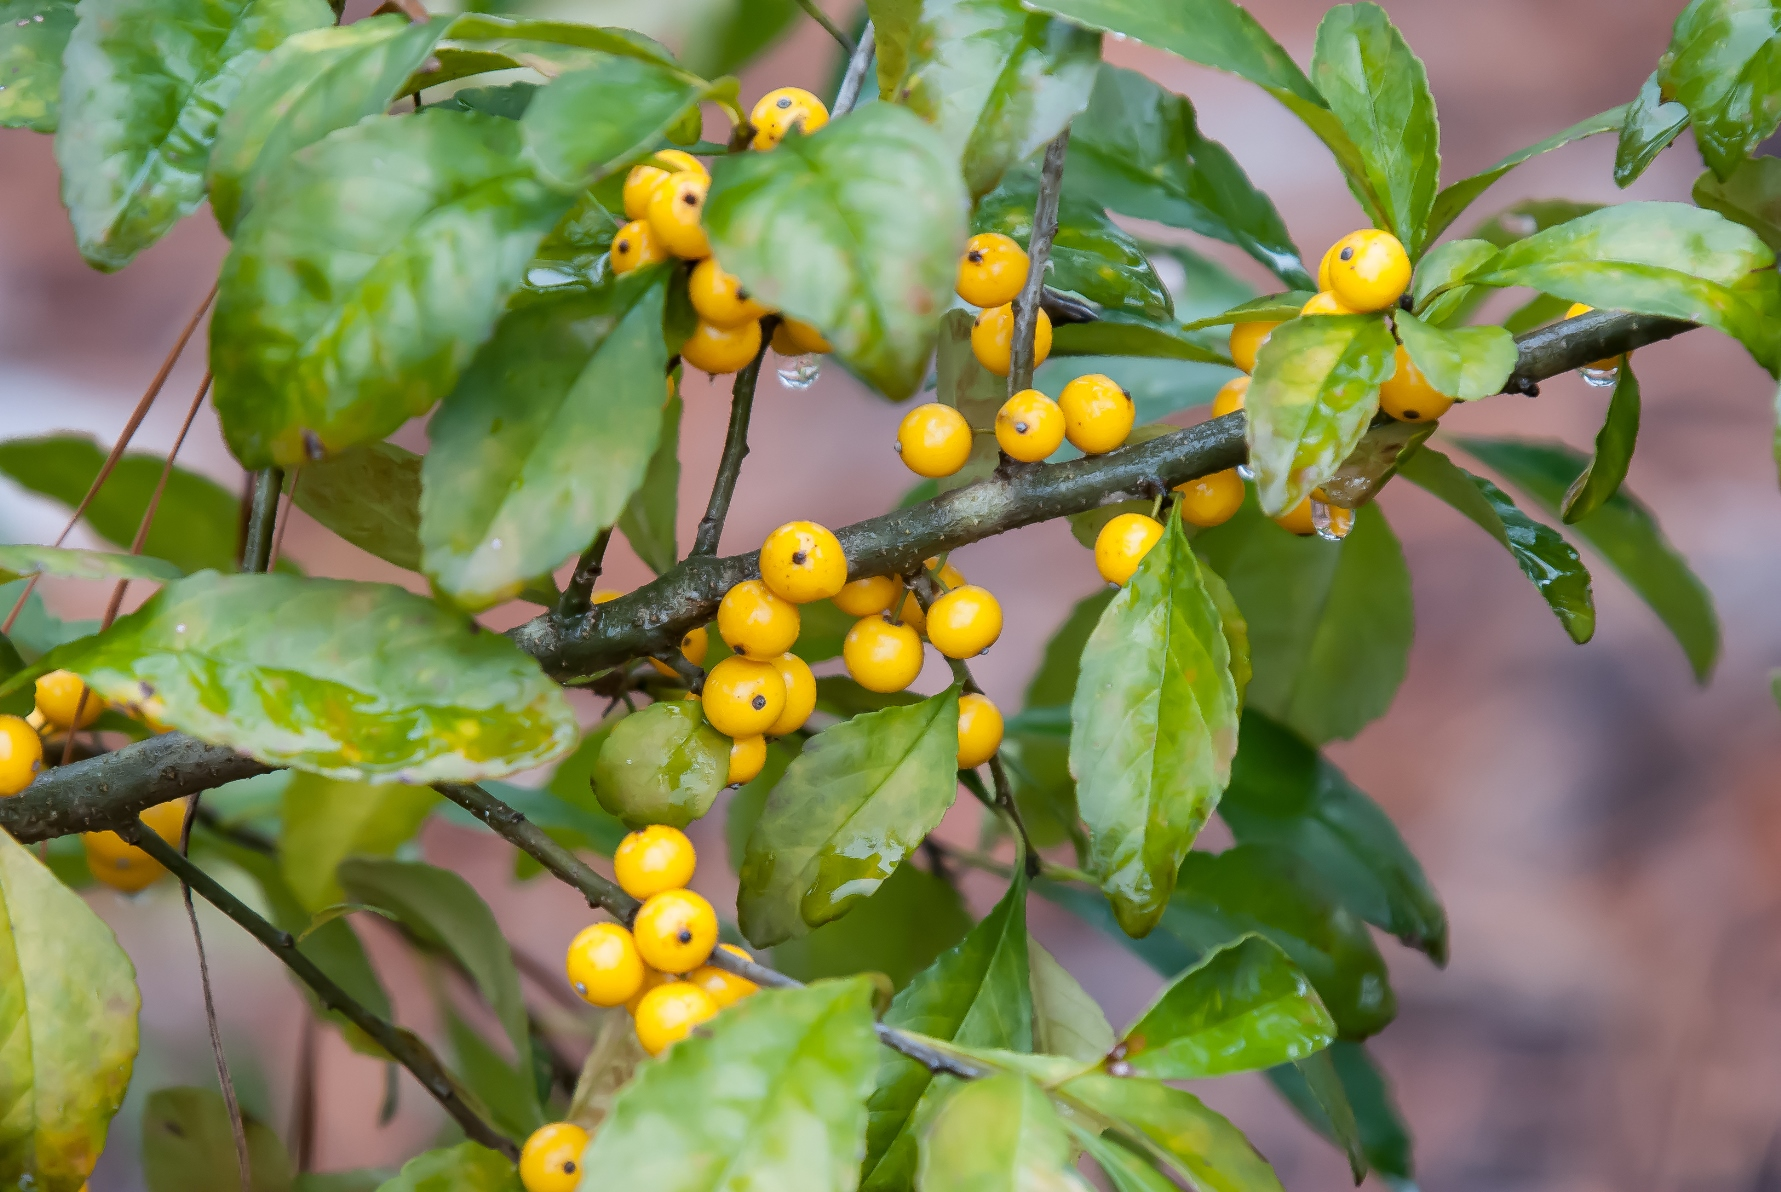 Though the leaves haven't fallen, this Finch Gold possumhaw holly is already showing out with branches filled with golden berries.